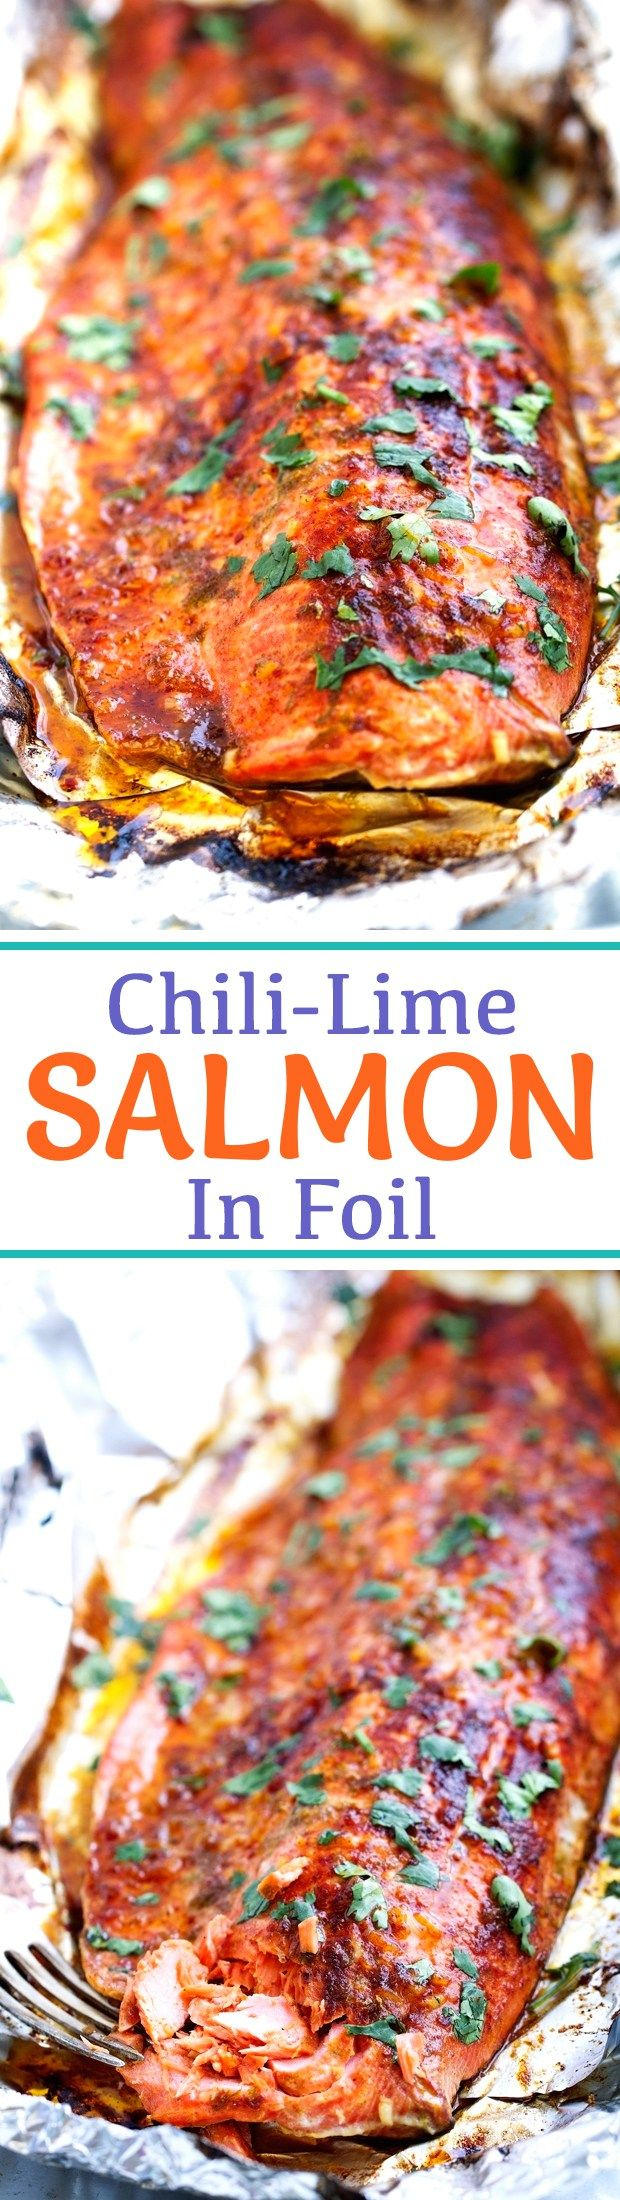 Chili-Lime Baked Salmon in Foil Recipe | Little Spice Jar